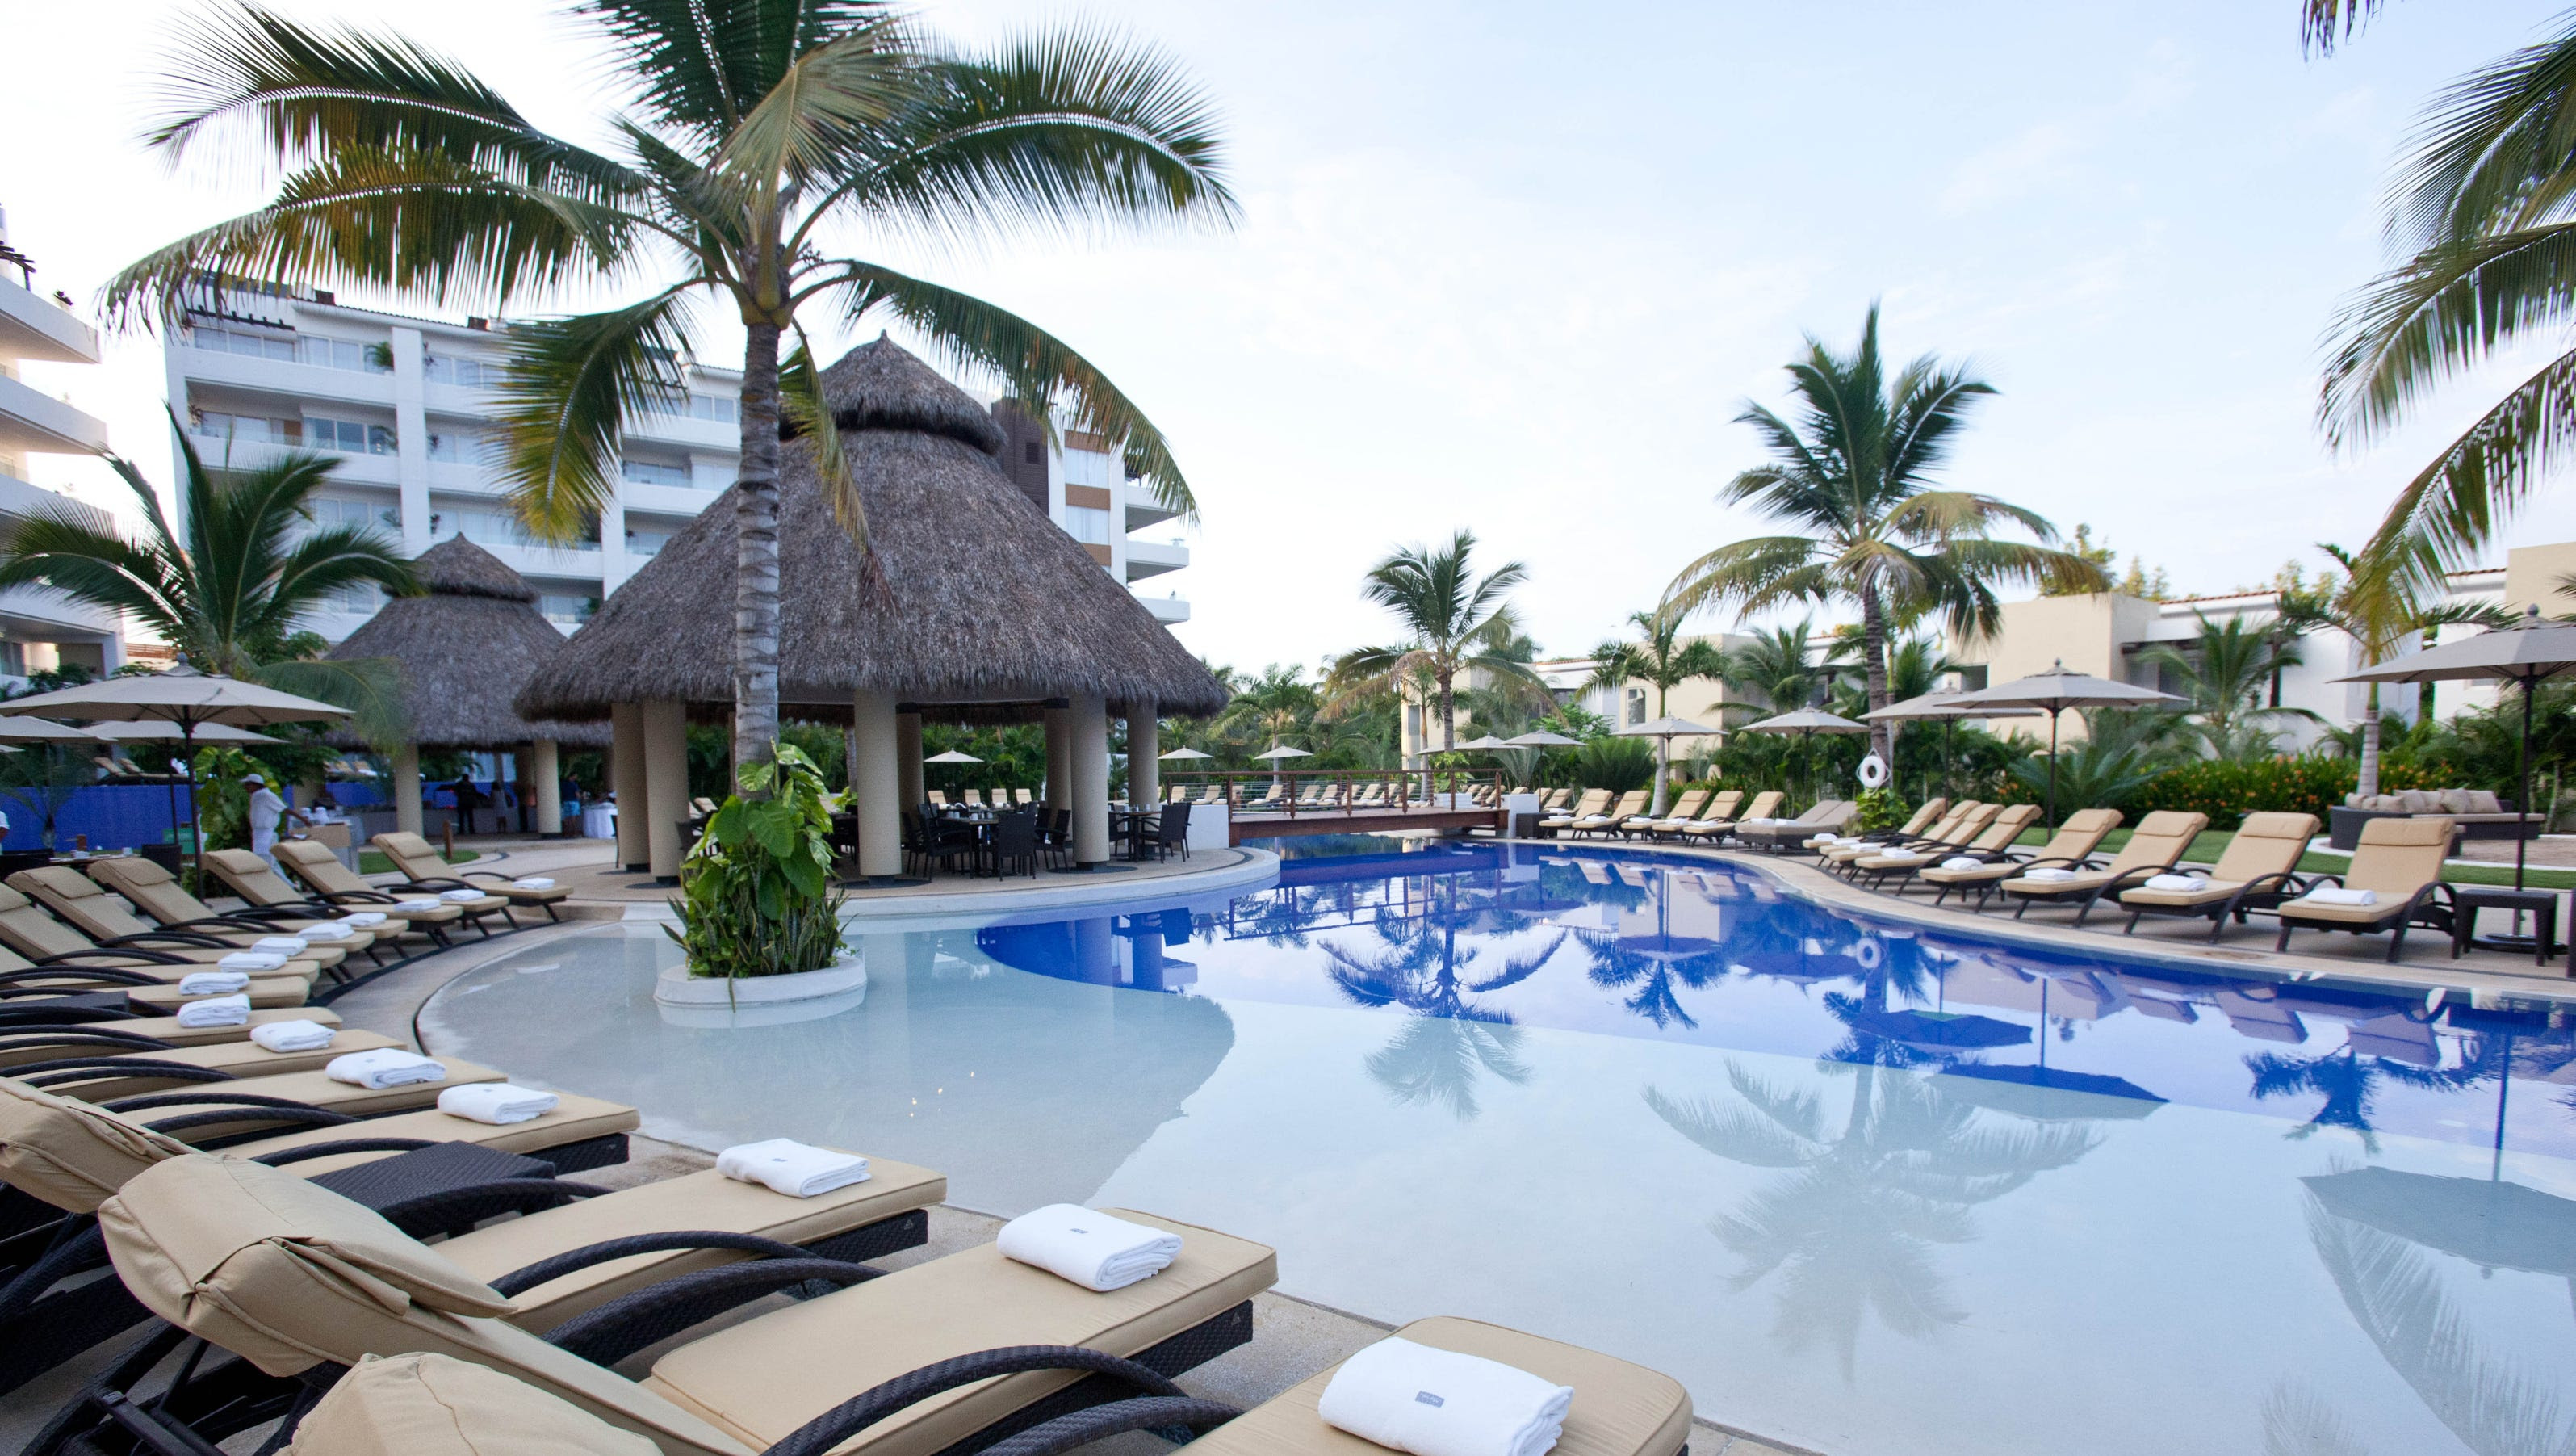 10 allinclusive resorts worthy of the name